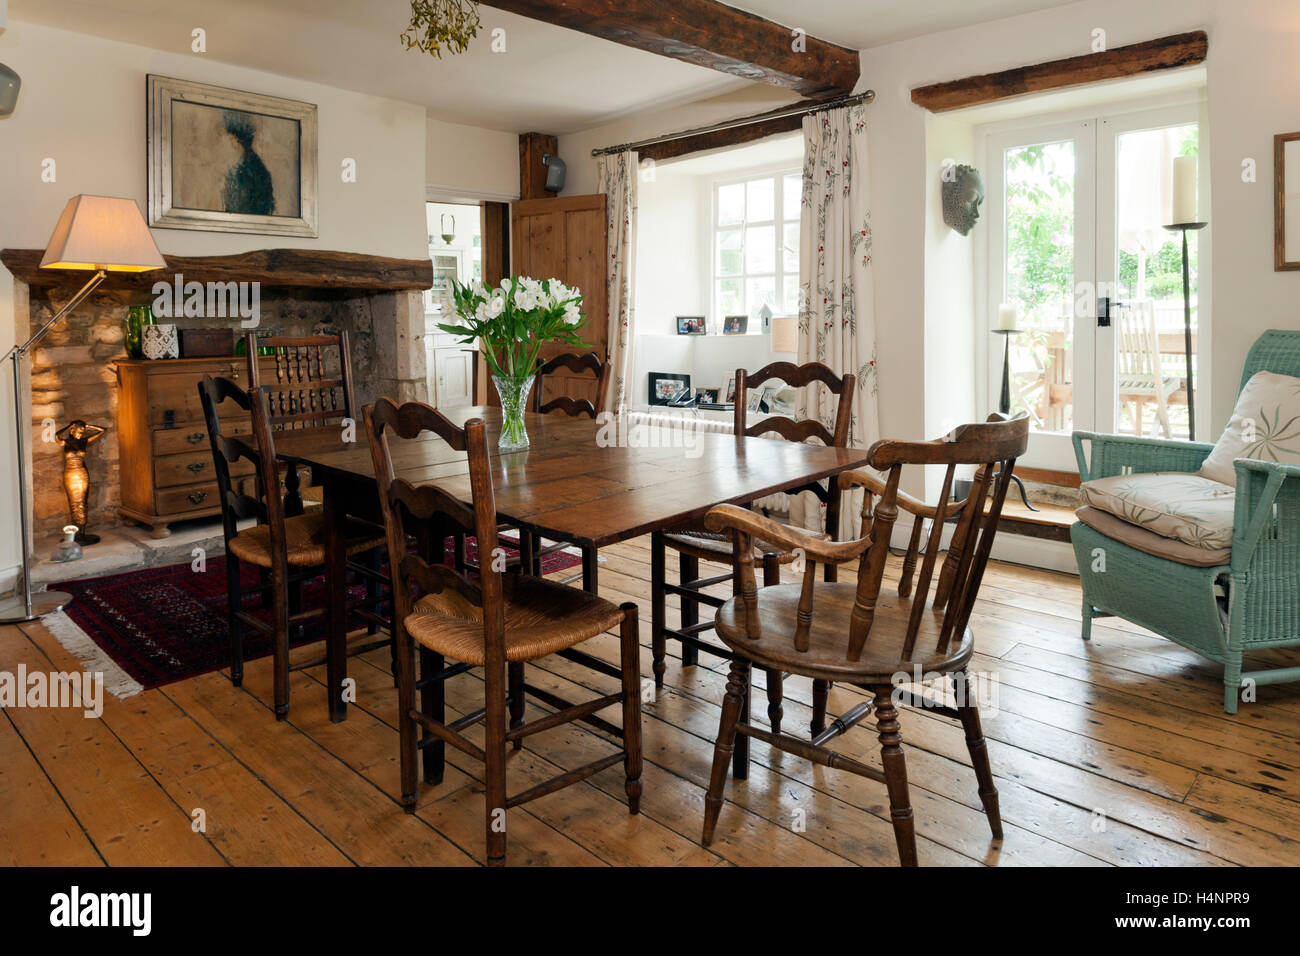 Antique furniture and stripped floorboards in a period cottage dining room - Stock Image